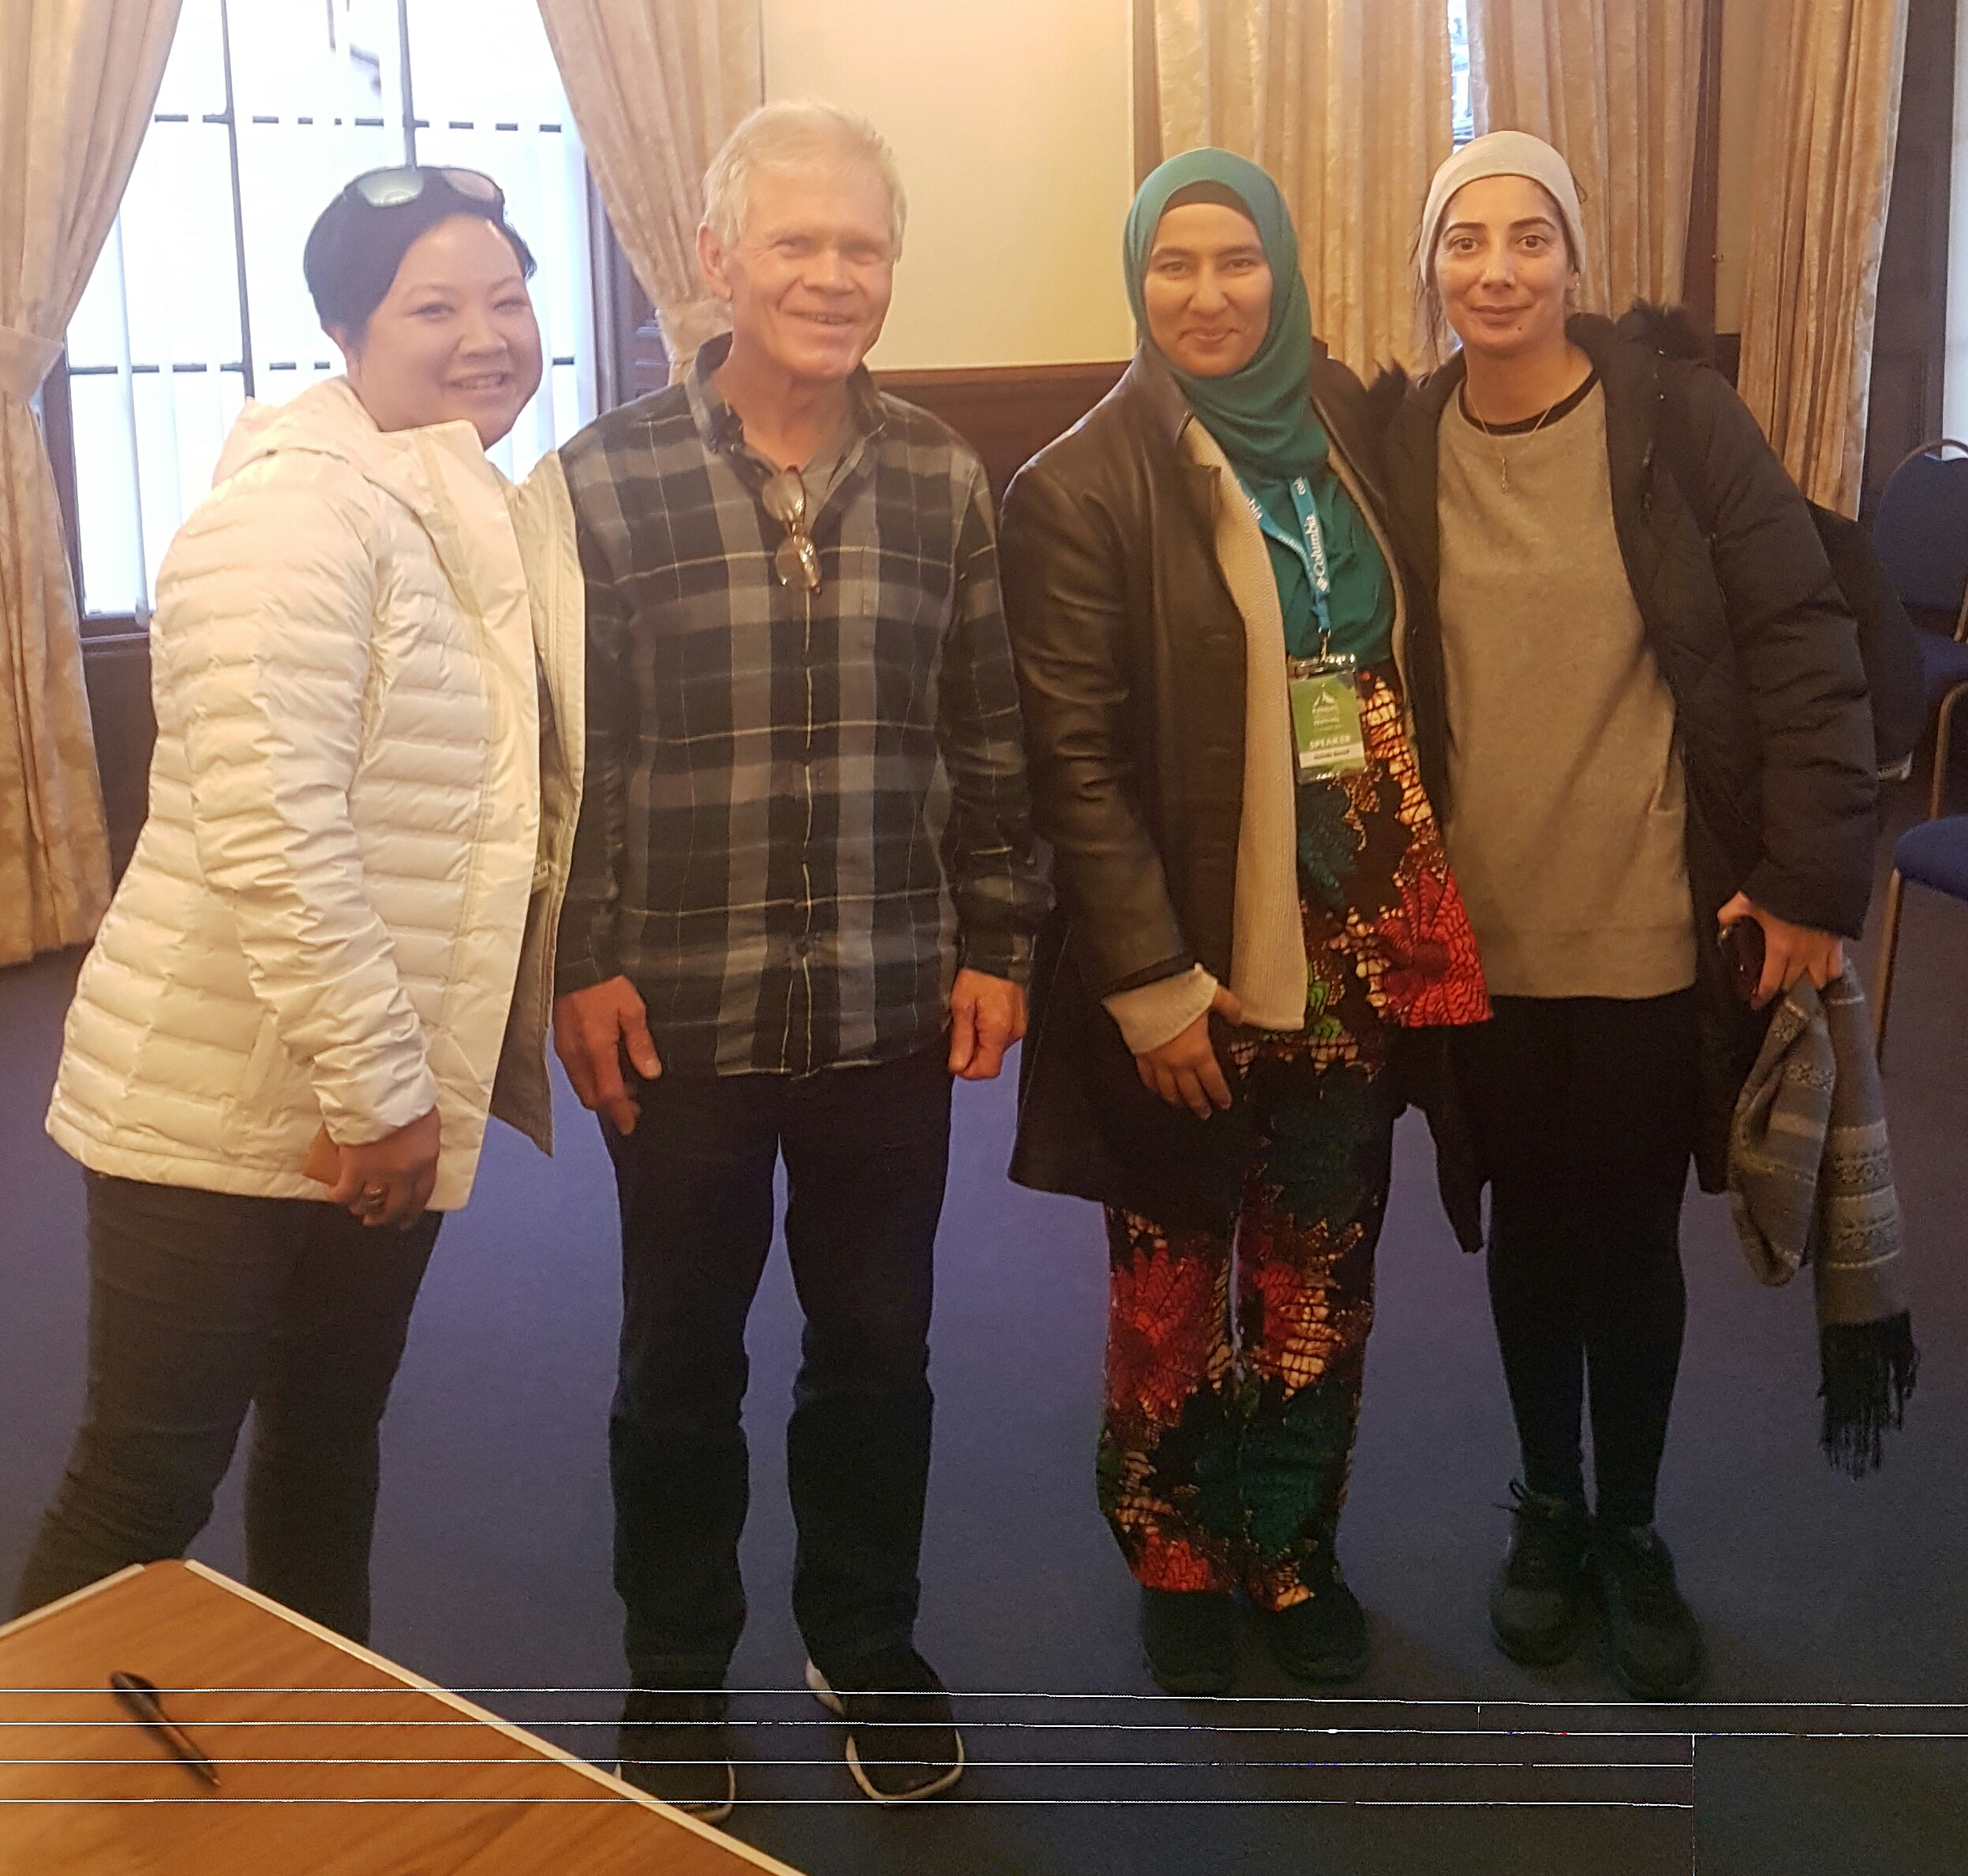 with Leslie Hsu Oh (Outdoor editor for panorama journal), the legend Rick Ridgeway (has been honoured with National Geographic's 'Lifetime Achievement' award) & Misba Khan (UK representative for an ALL-WOMAN expedition team going to the North Pole, 2018)  at the Kendal Mountain Festival (Nov 2017)